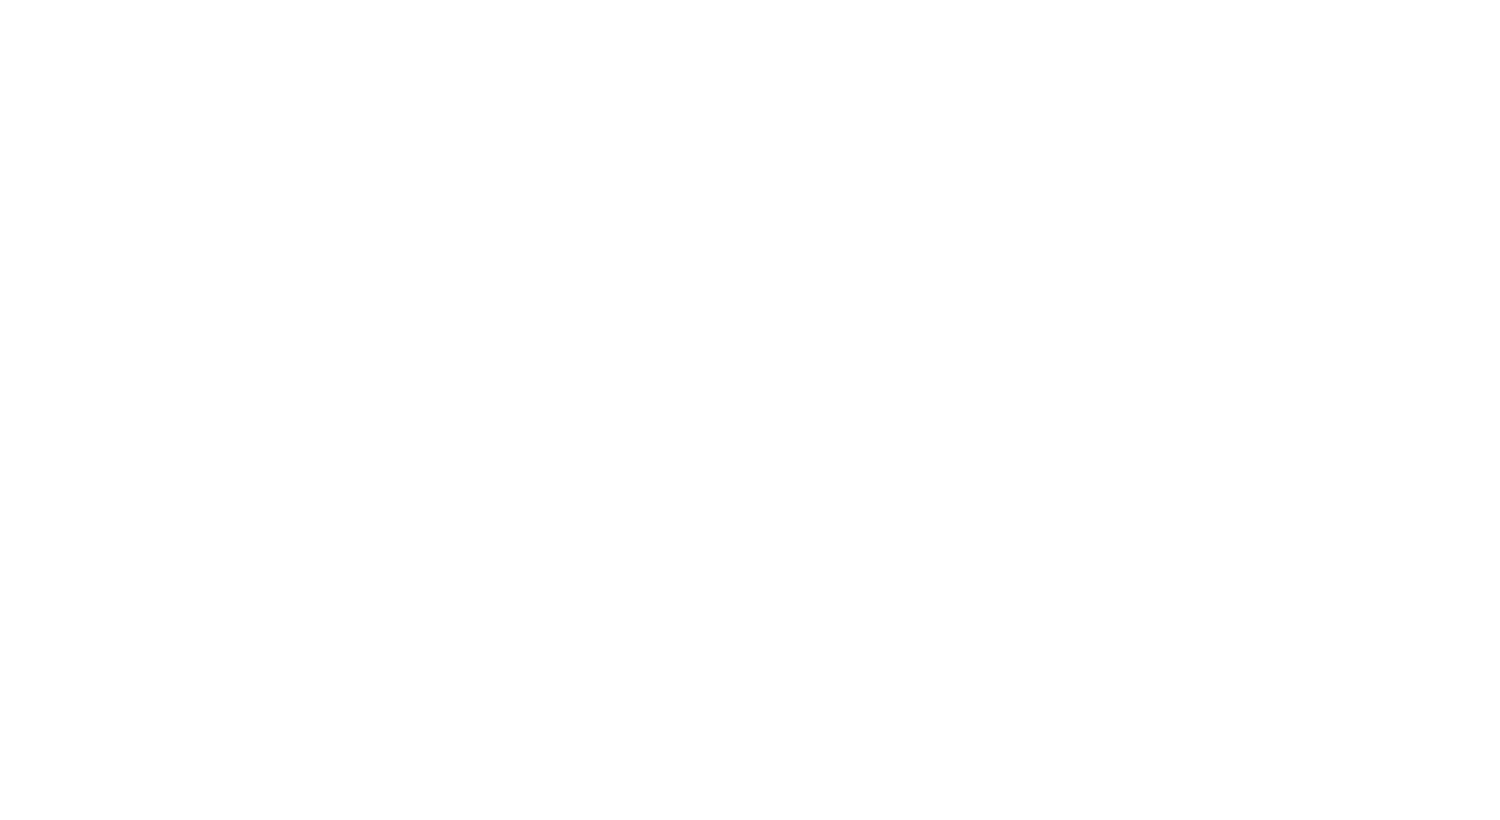 National Schools Lacrosse